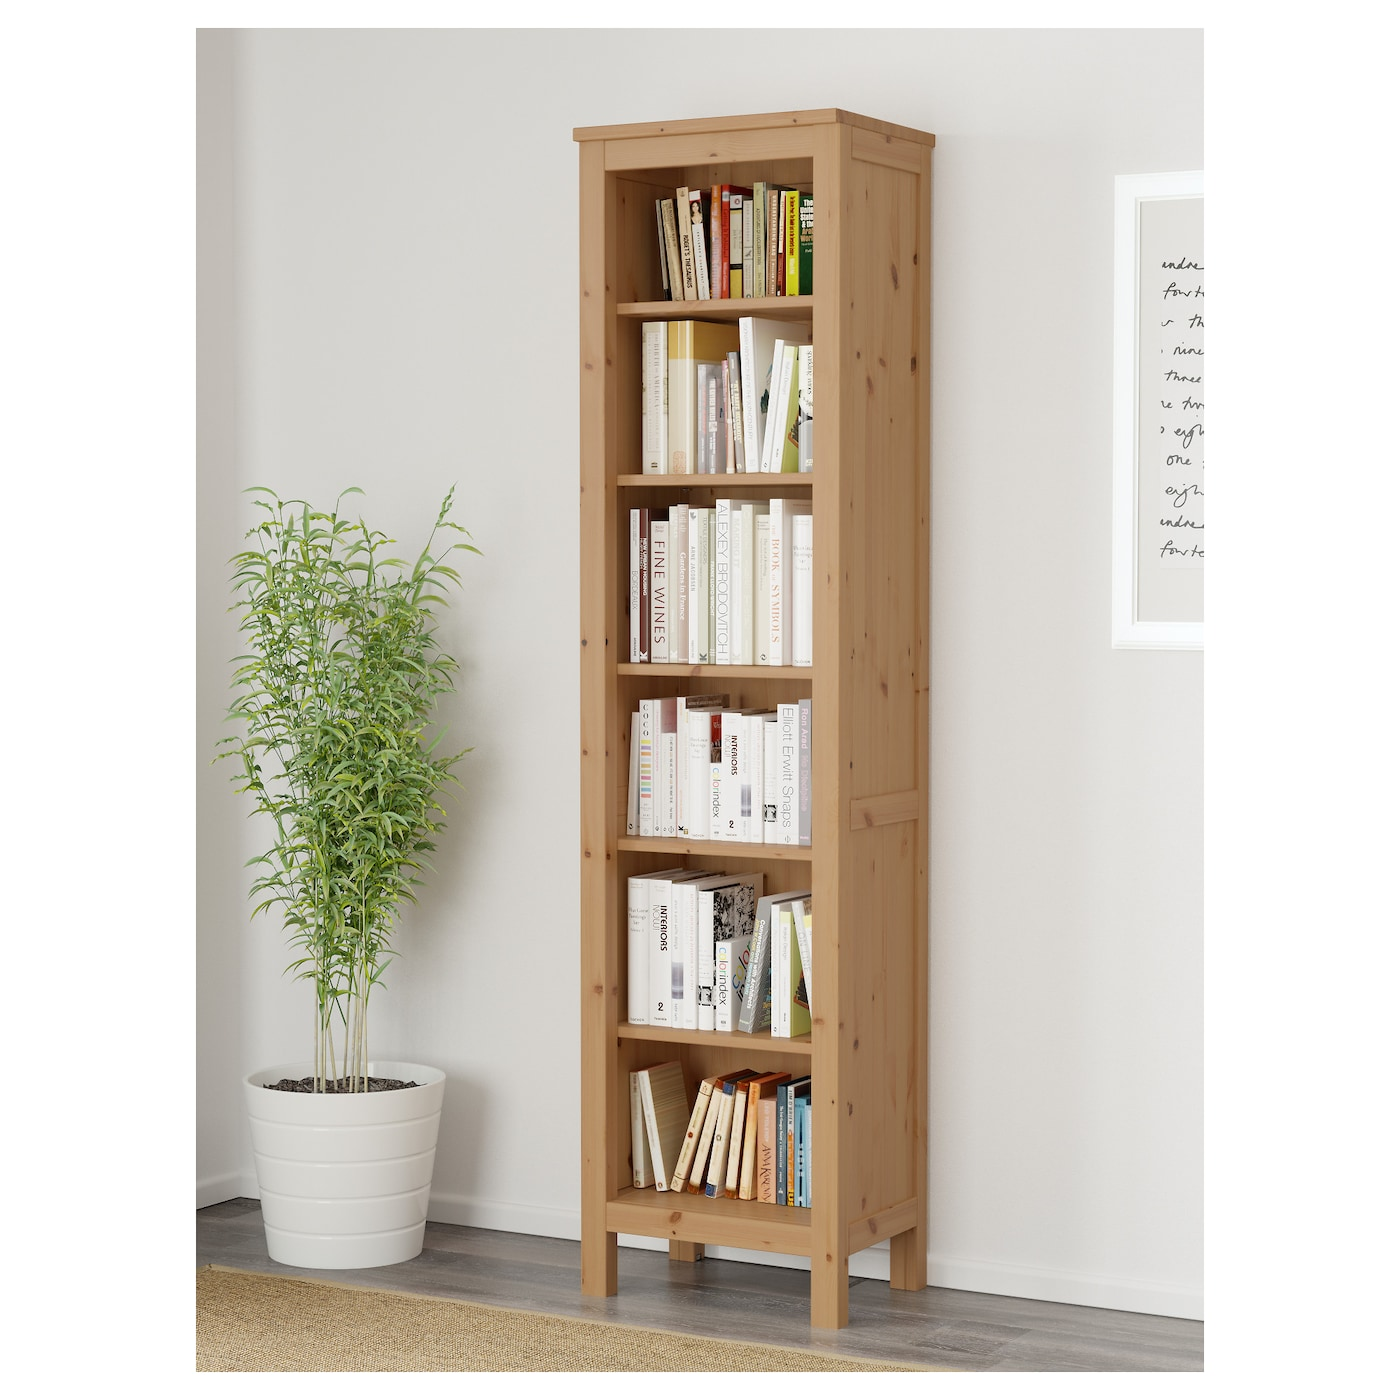 hemnes bookcase light brown 49x197 cm ikea